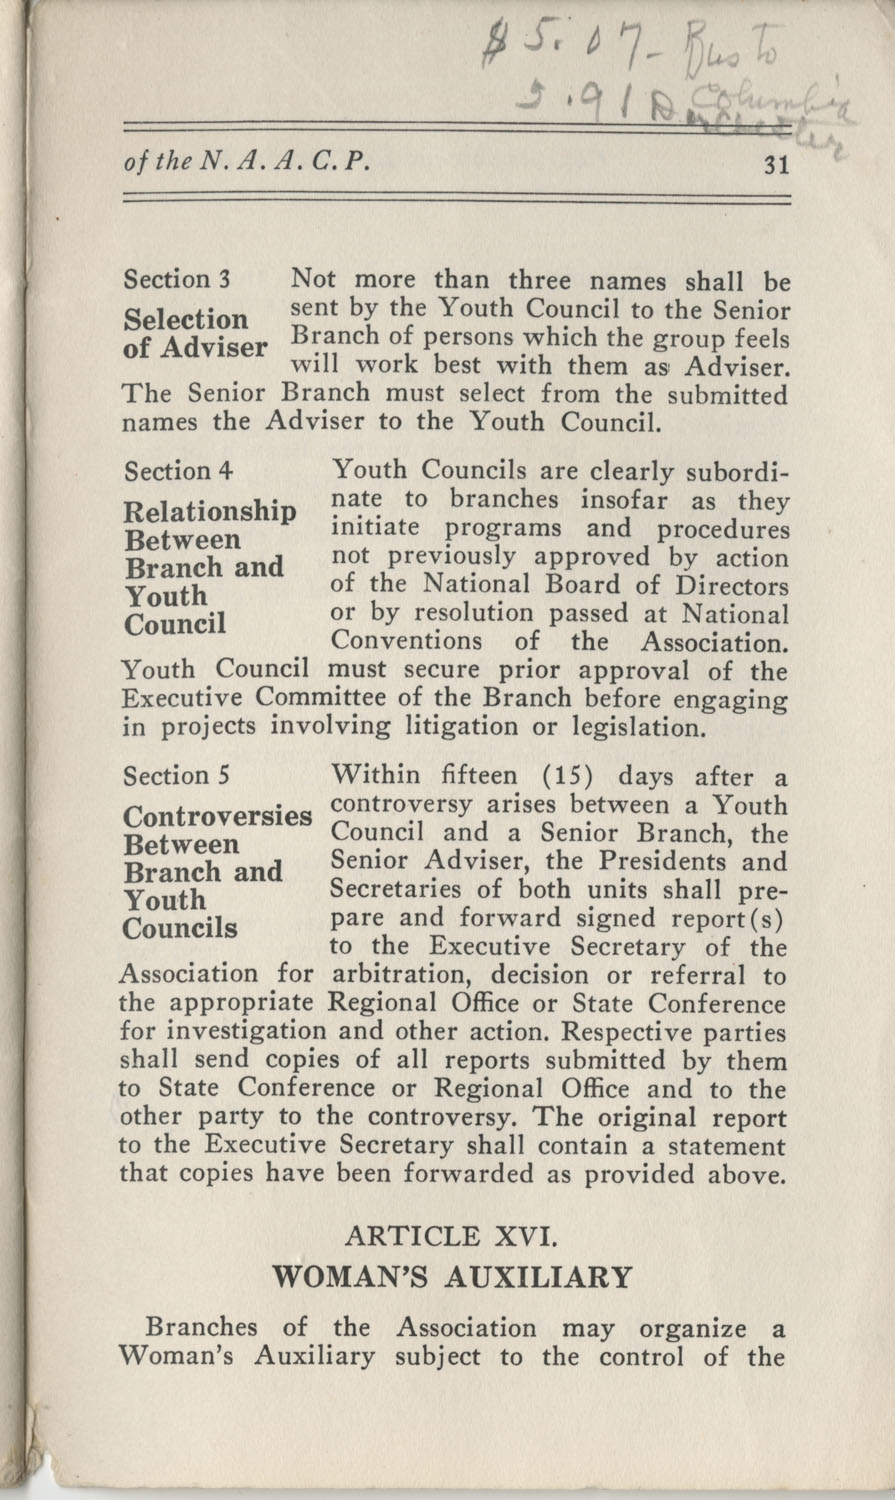 Constitutions and By-Laws, September 1960, Page 31